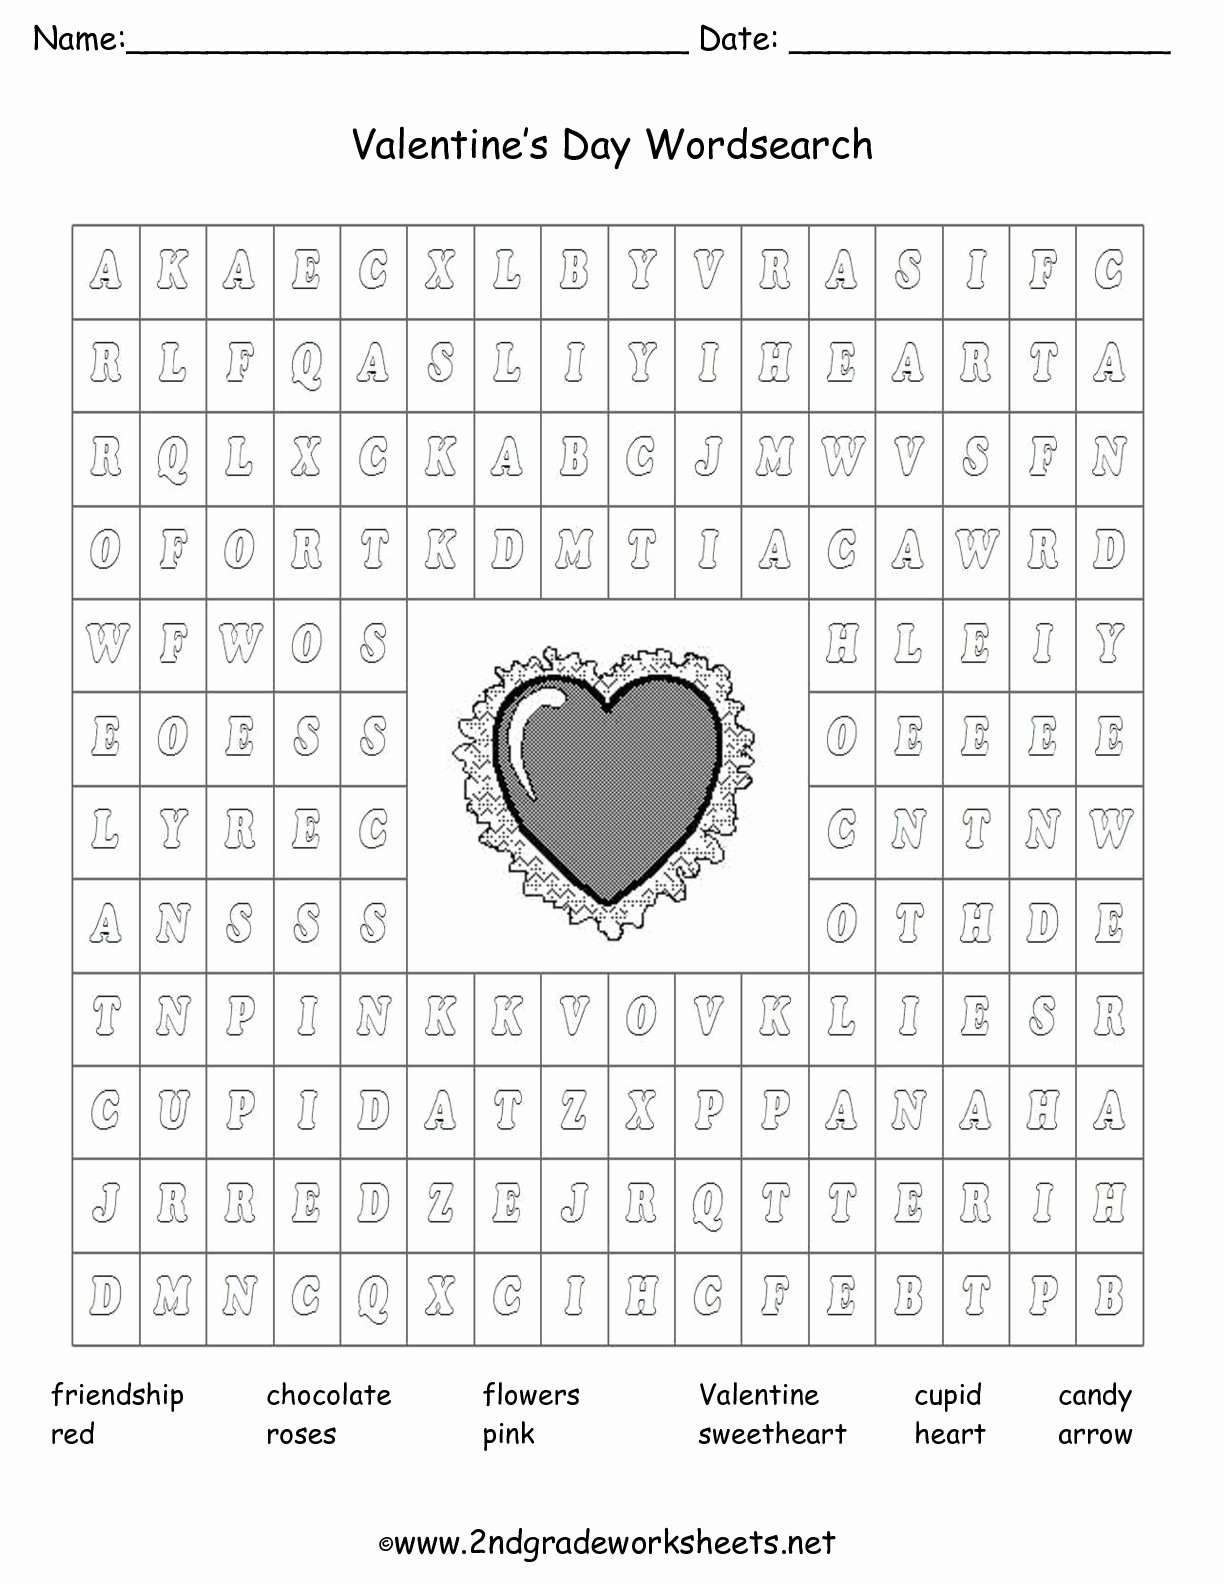 Valentine's Day Multiplication Worksheets New Valentine Printouts and Worksheets Fun Math